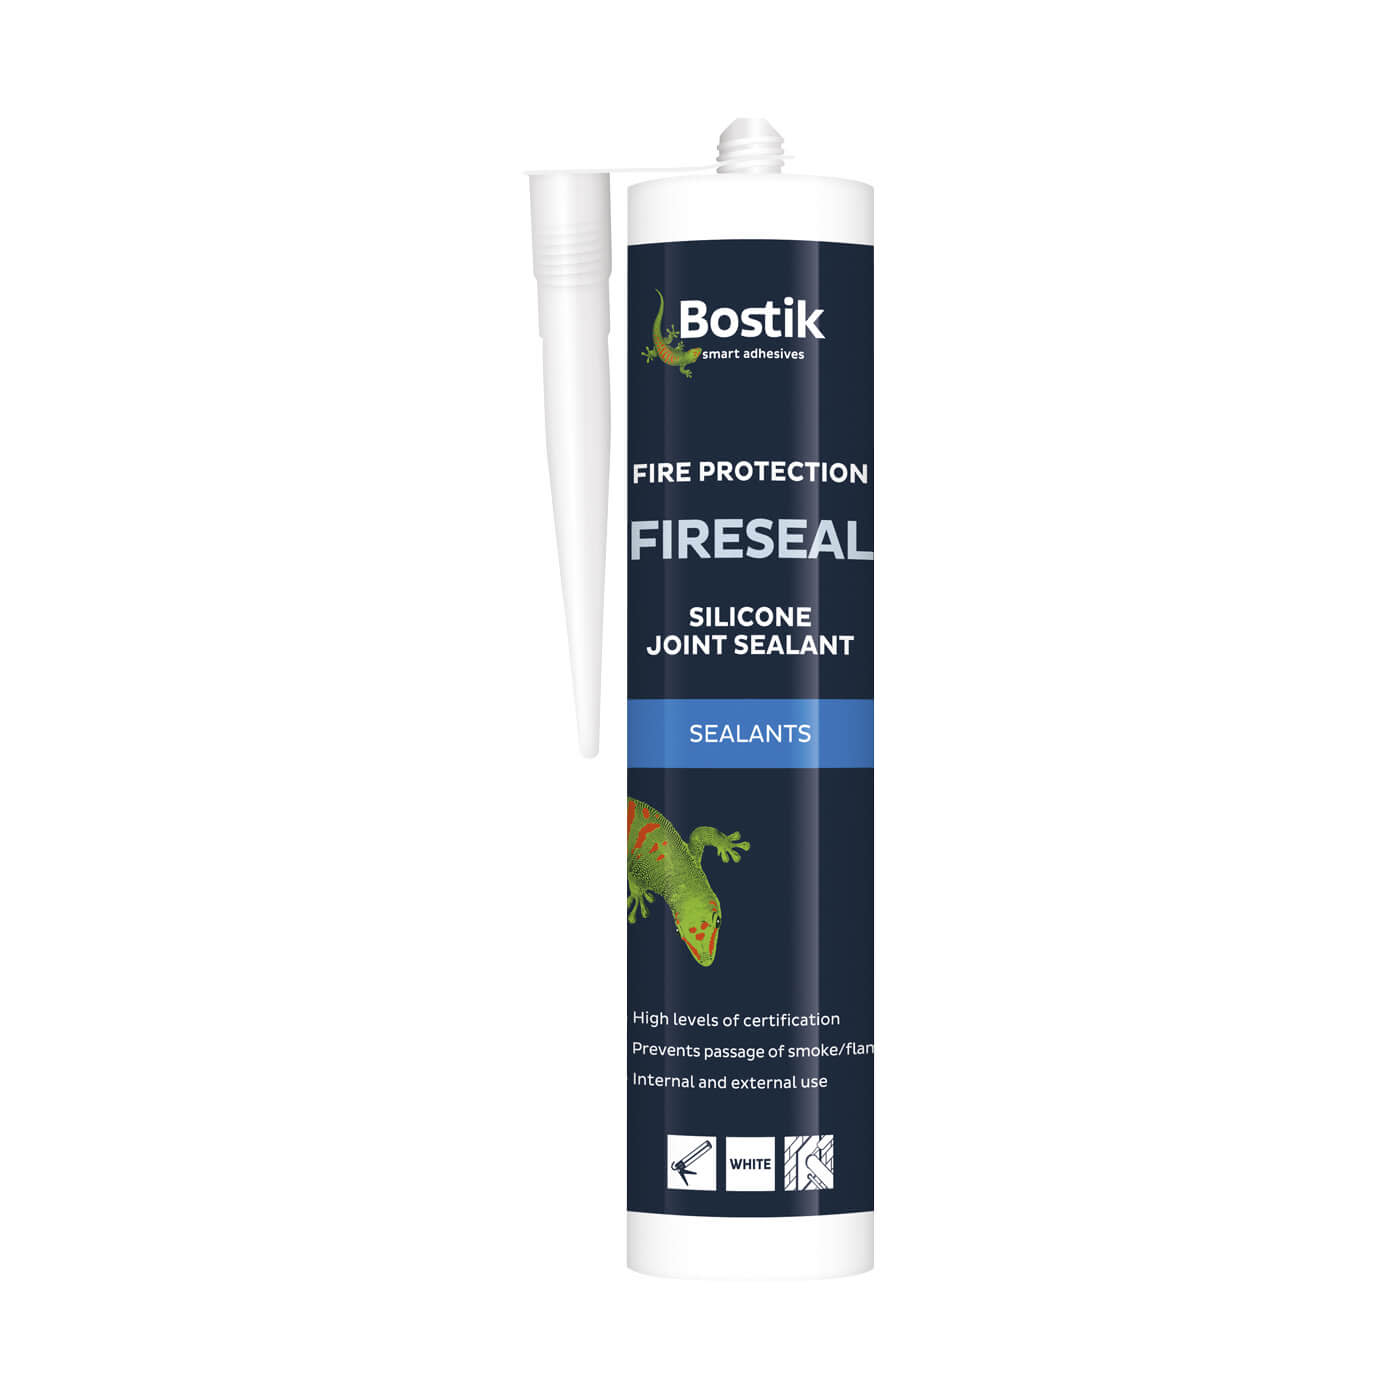 Bostik Fireseal Silicone Joint Sealant - 310ml)